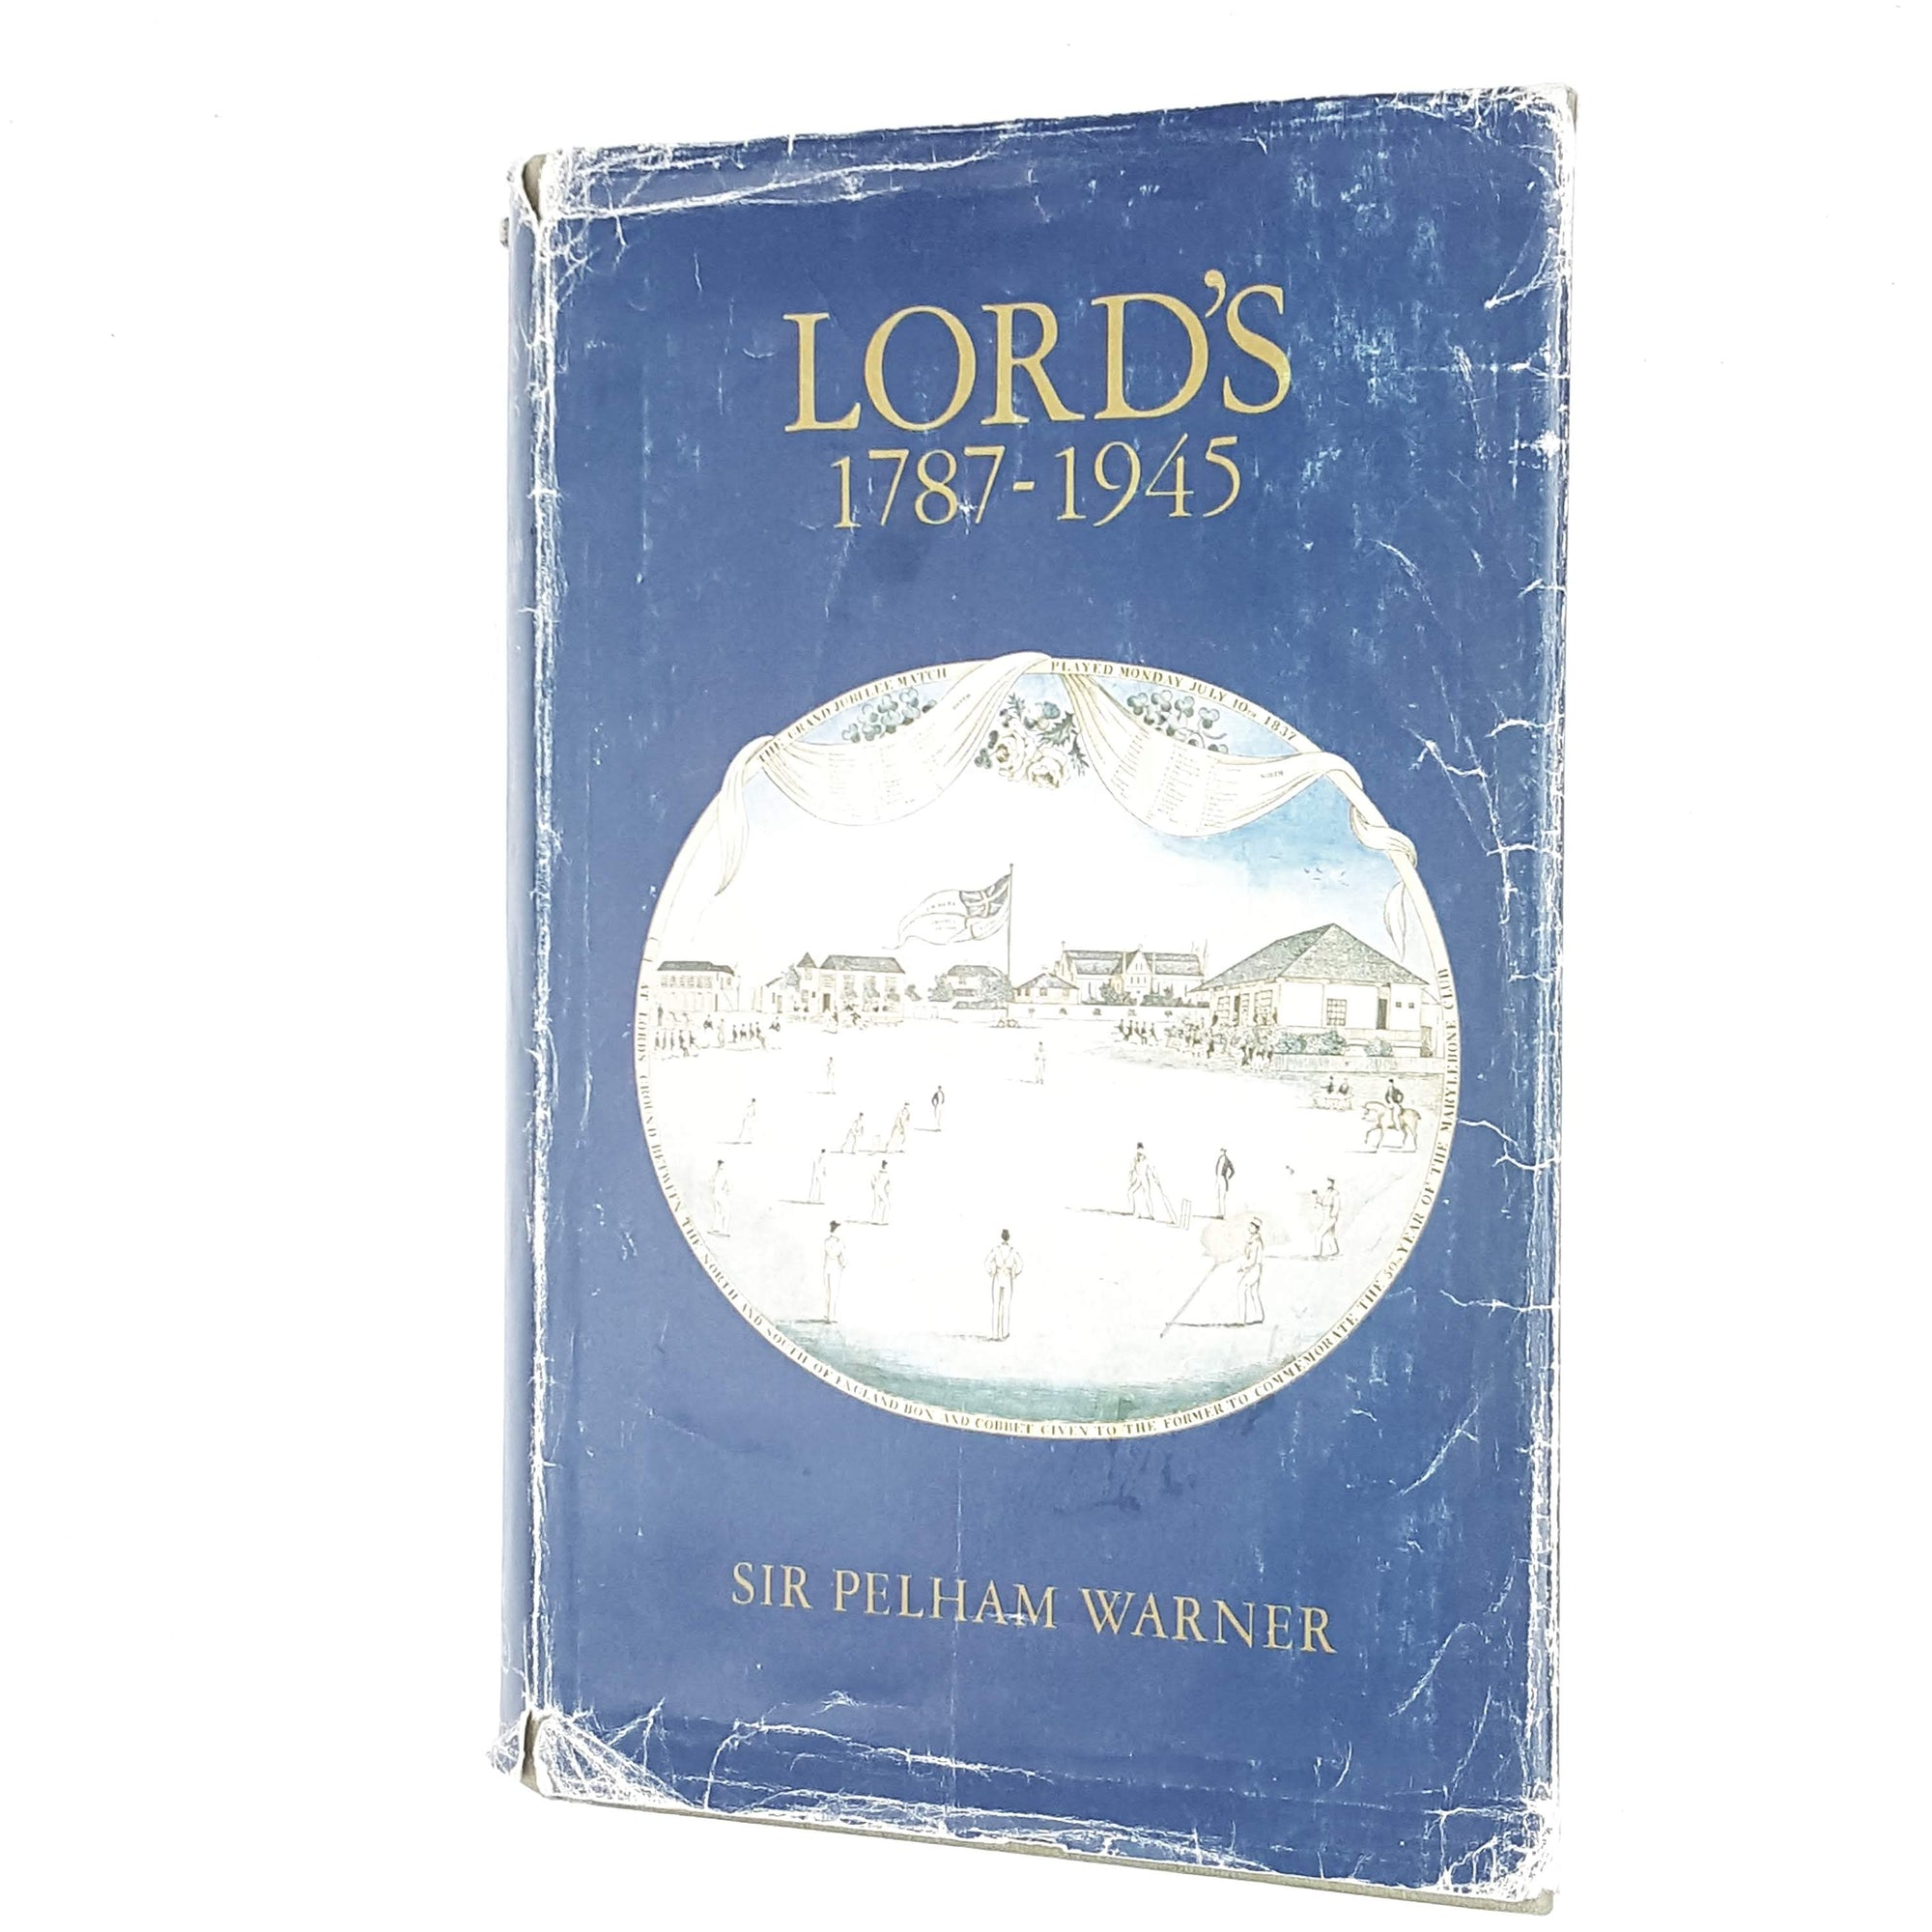 Lord's 1787-1945 by Sir Pelham Warner 1974